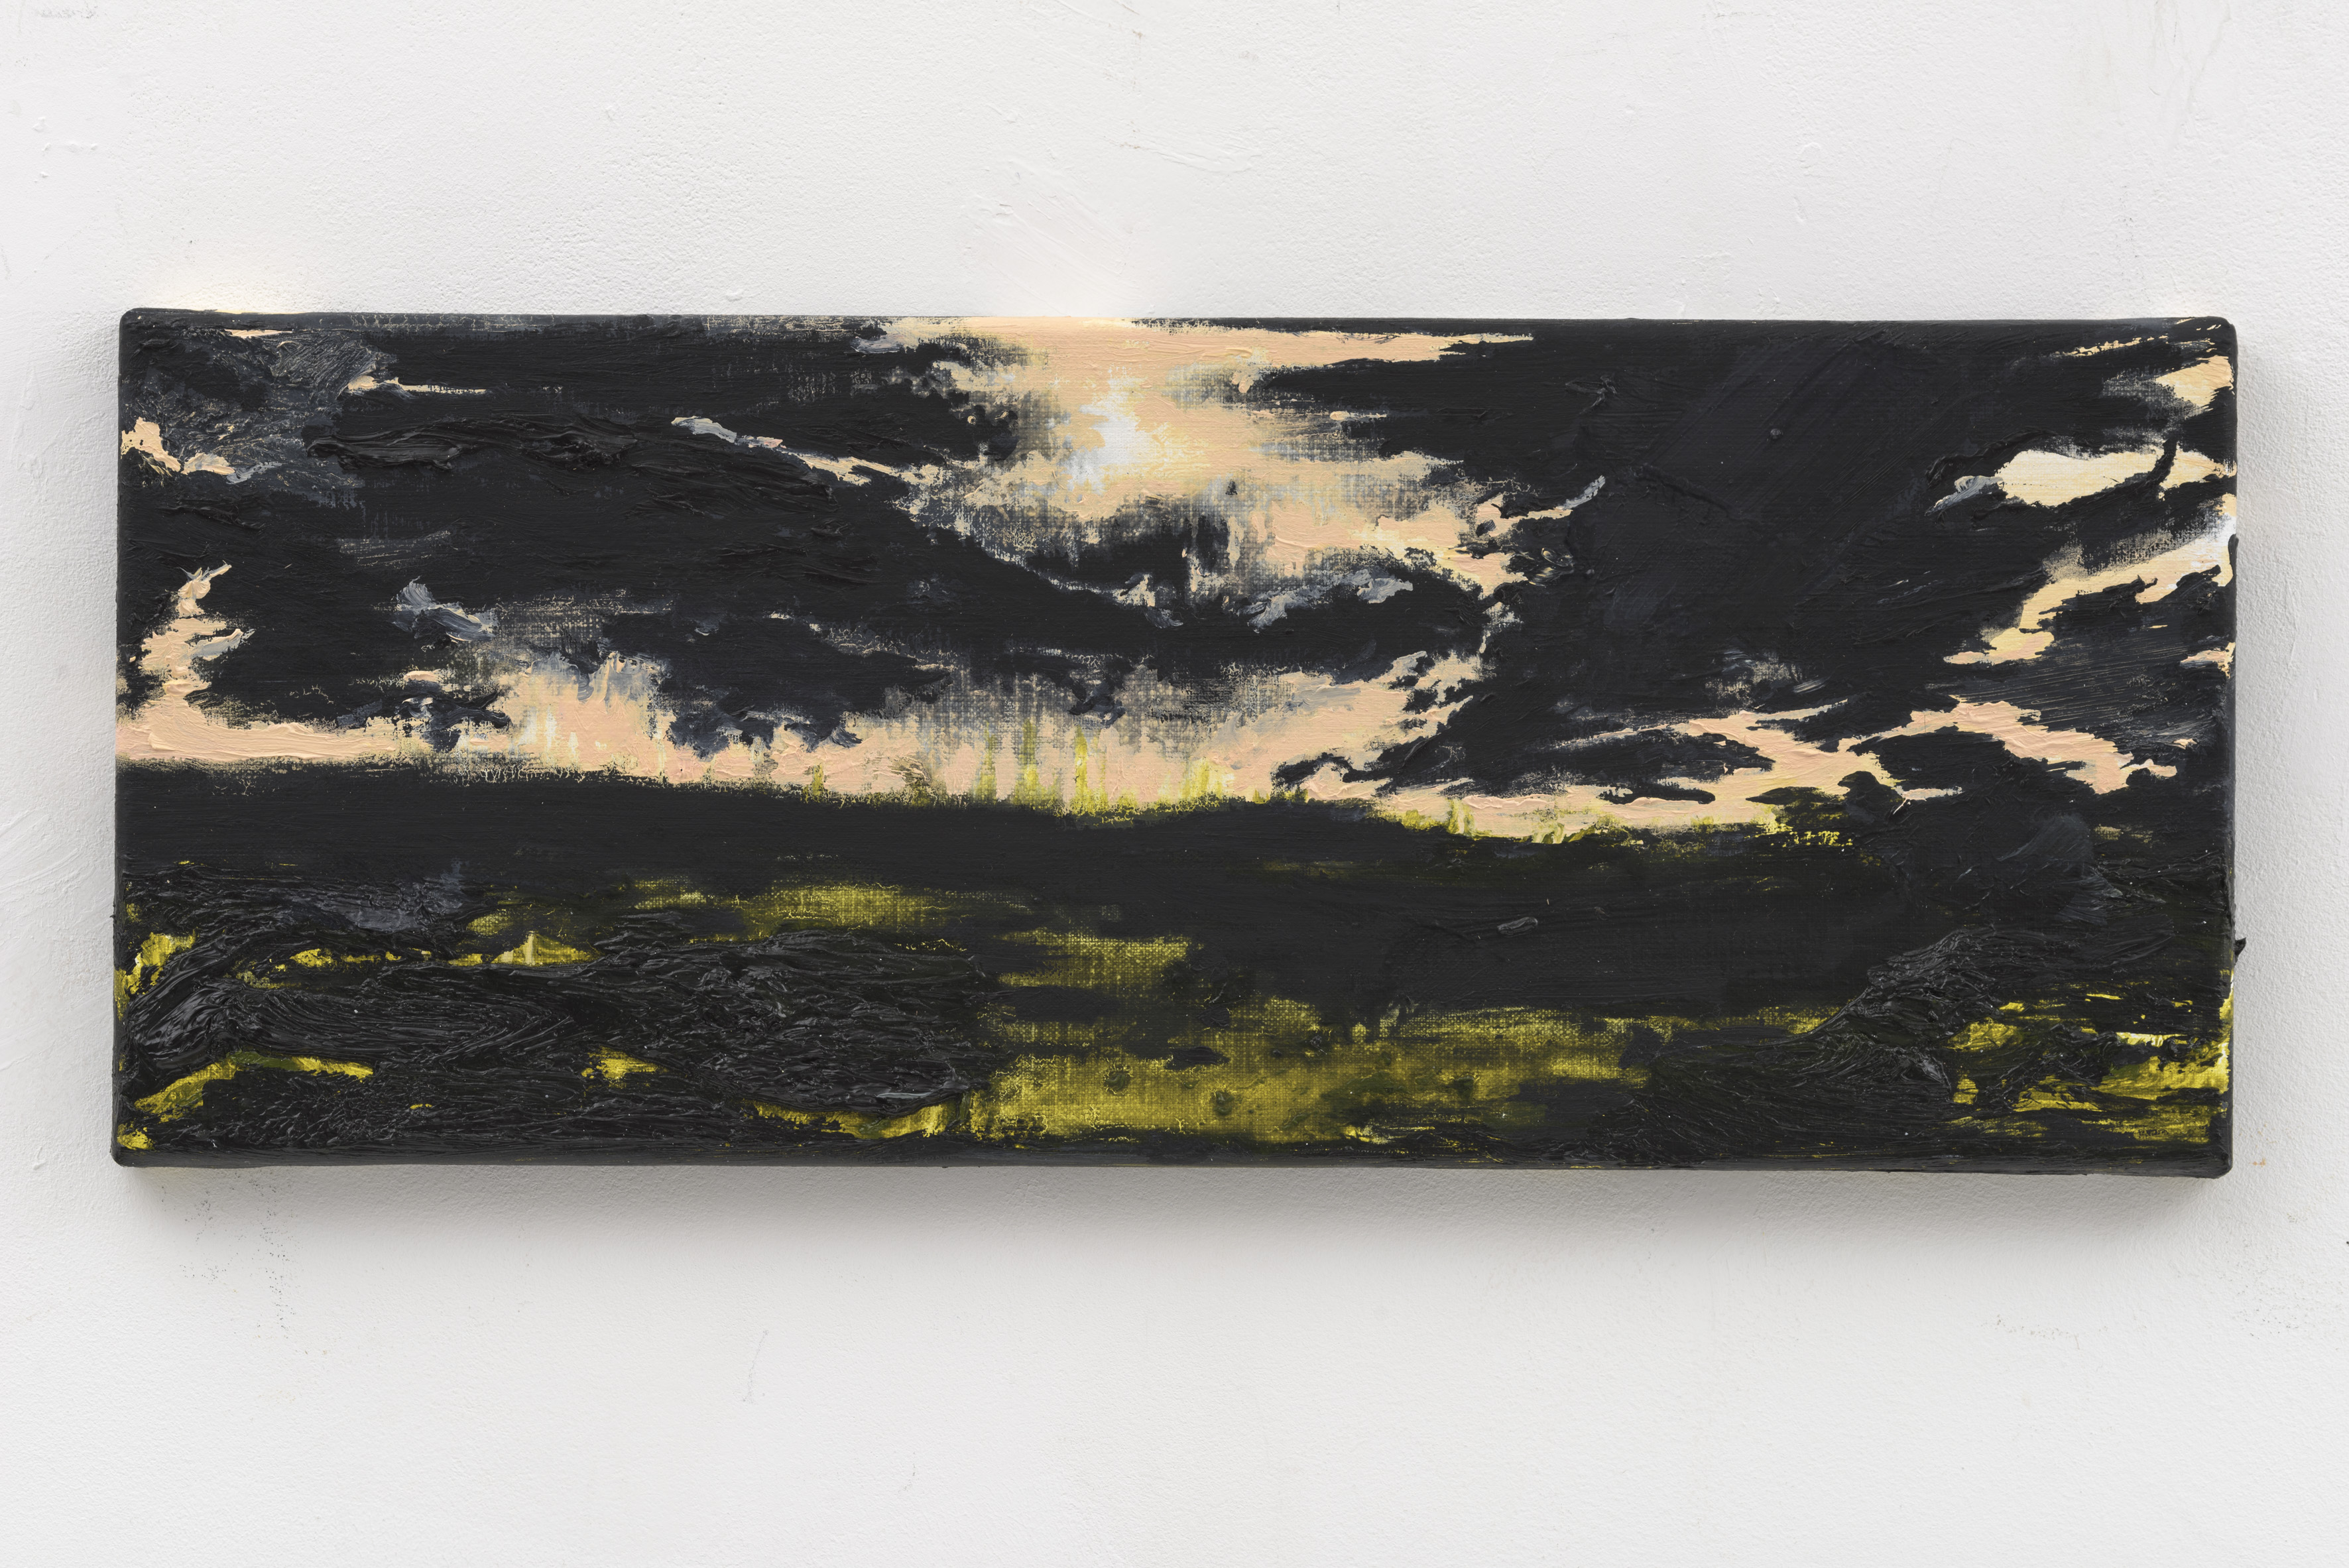 """Resonating Landscapes IX"" 20 x 50 cm. oil on linen 2017"